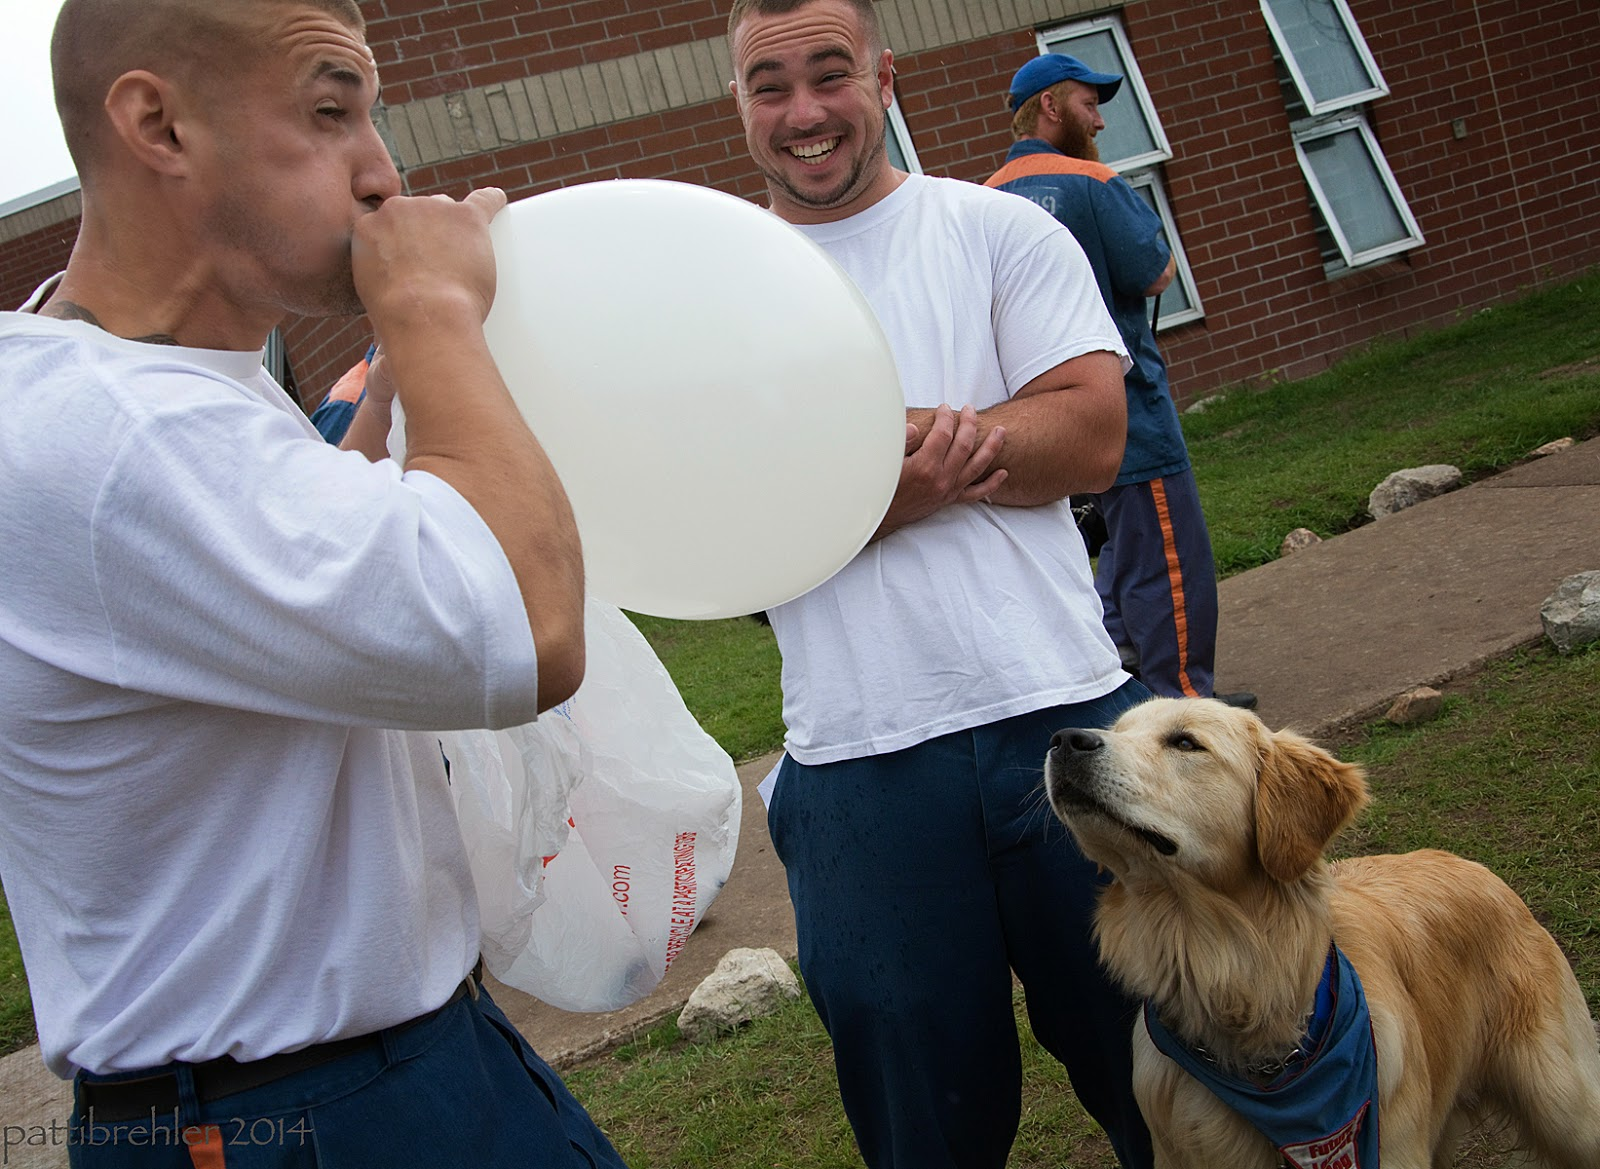 A man dressed in a white t-shirt and blue prison pants is standing on the left facing right and blowing up a big white balloon. His face is straining with the effort. To his right facing the camera is another man dressed in a white t-shirt and blue prison pants. His arems are folded at his chest and he is smiling widely at the other man. A golden retriever with the Futurel Leader Dog bandana is standing on the right looking up at the balloon. There is a man dressed in the blue prison uniform and a blue baseball hat in the background looking to the right. The men are standing on grass and there is the brick wall of the unti behind them.